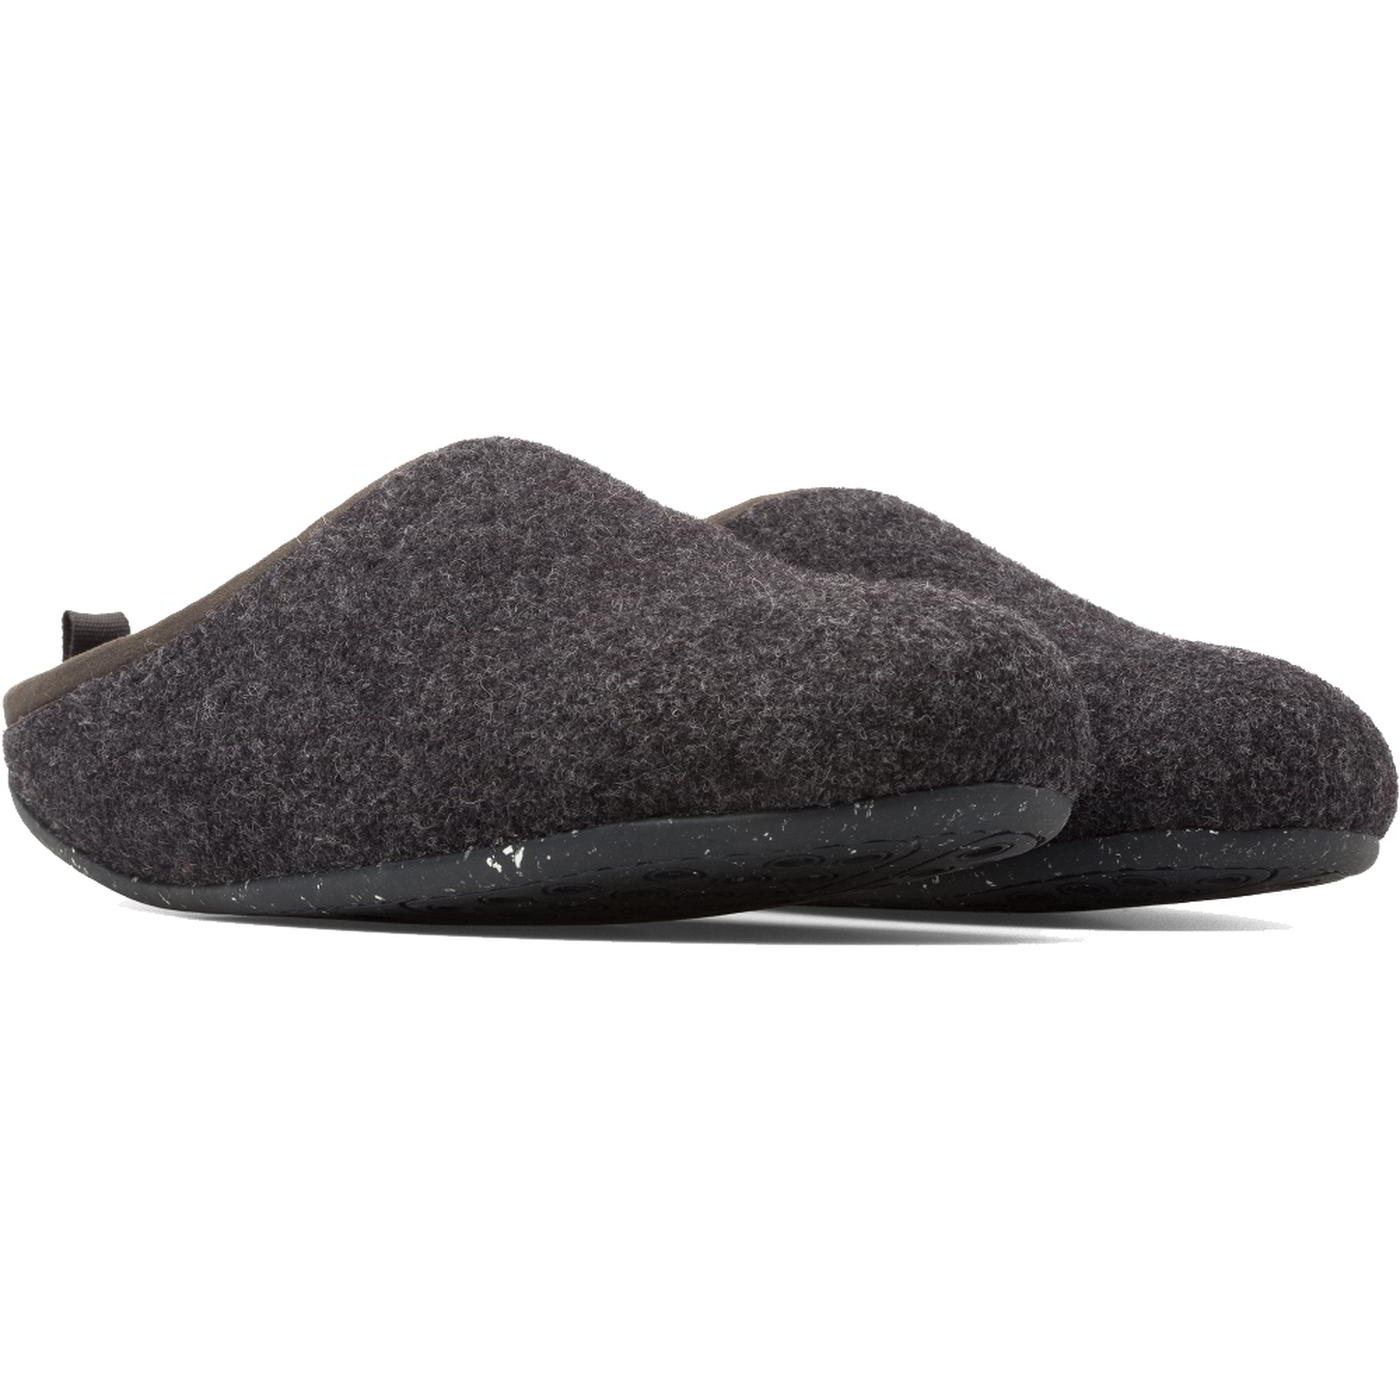 633ad9516d46 Camper Wabi Mens Grey Blue Outdoor Sole Felt Slippers Shoes Size 7 ...